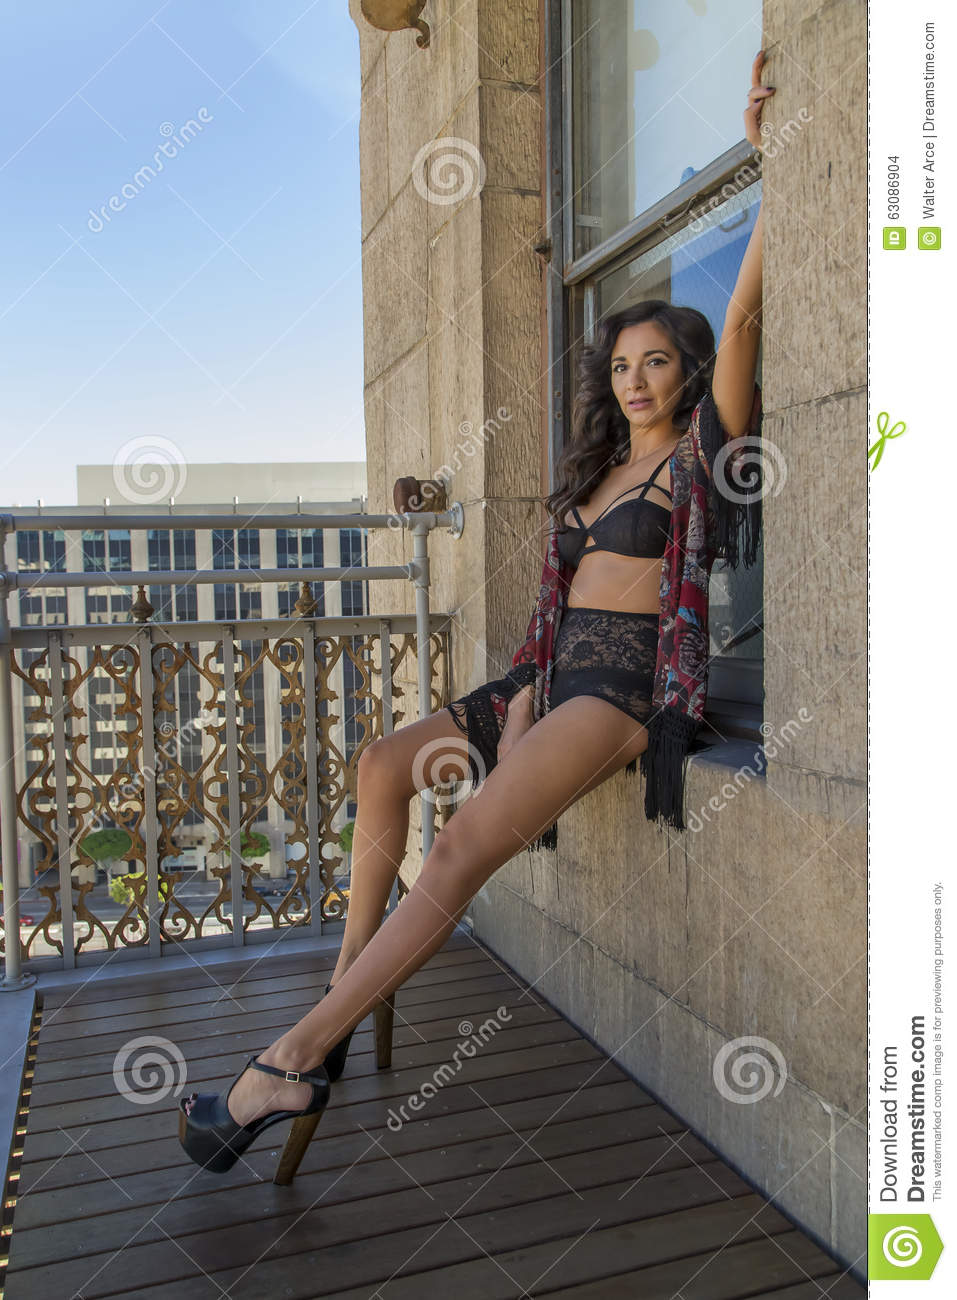 Download On modèle un balcon photo stock. Image du adulte, balcon - 63086904